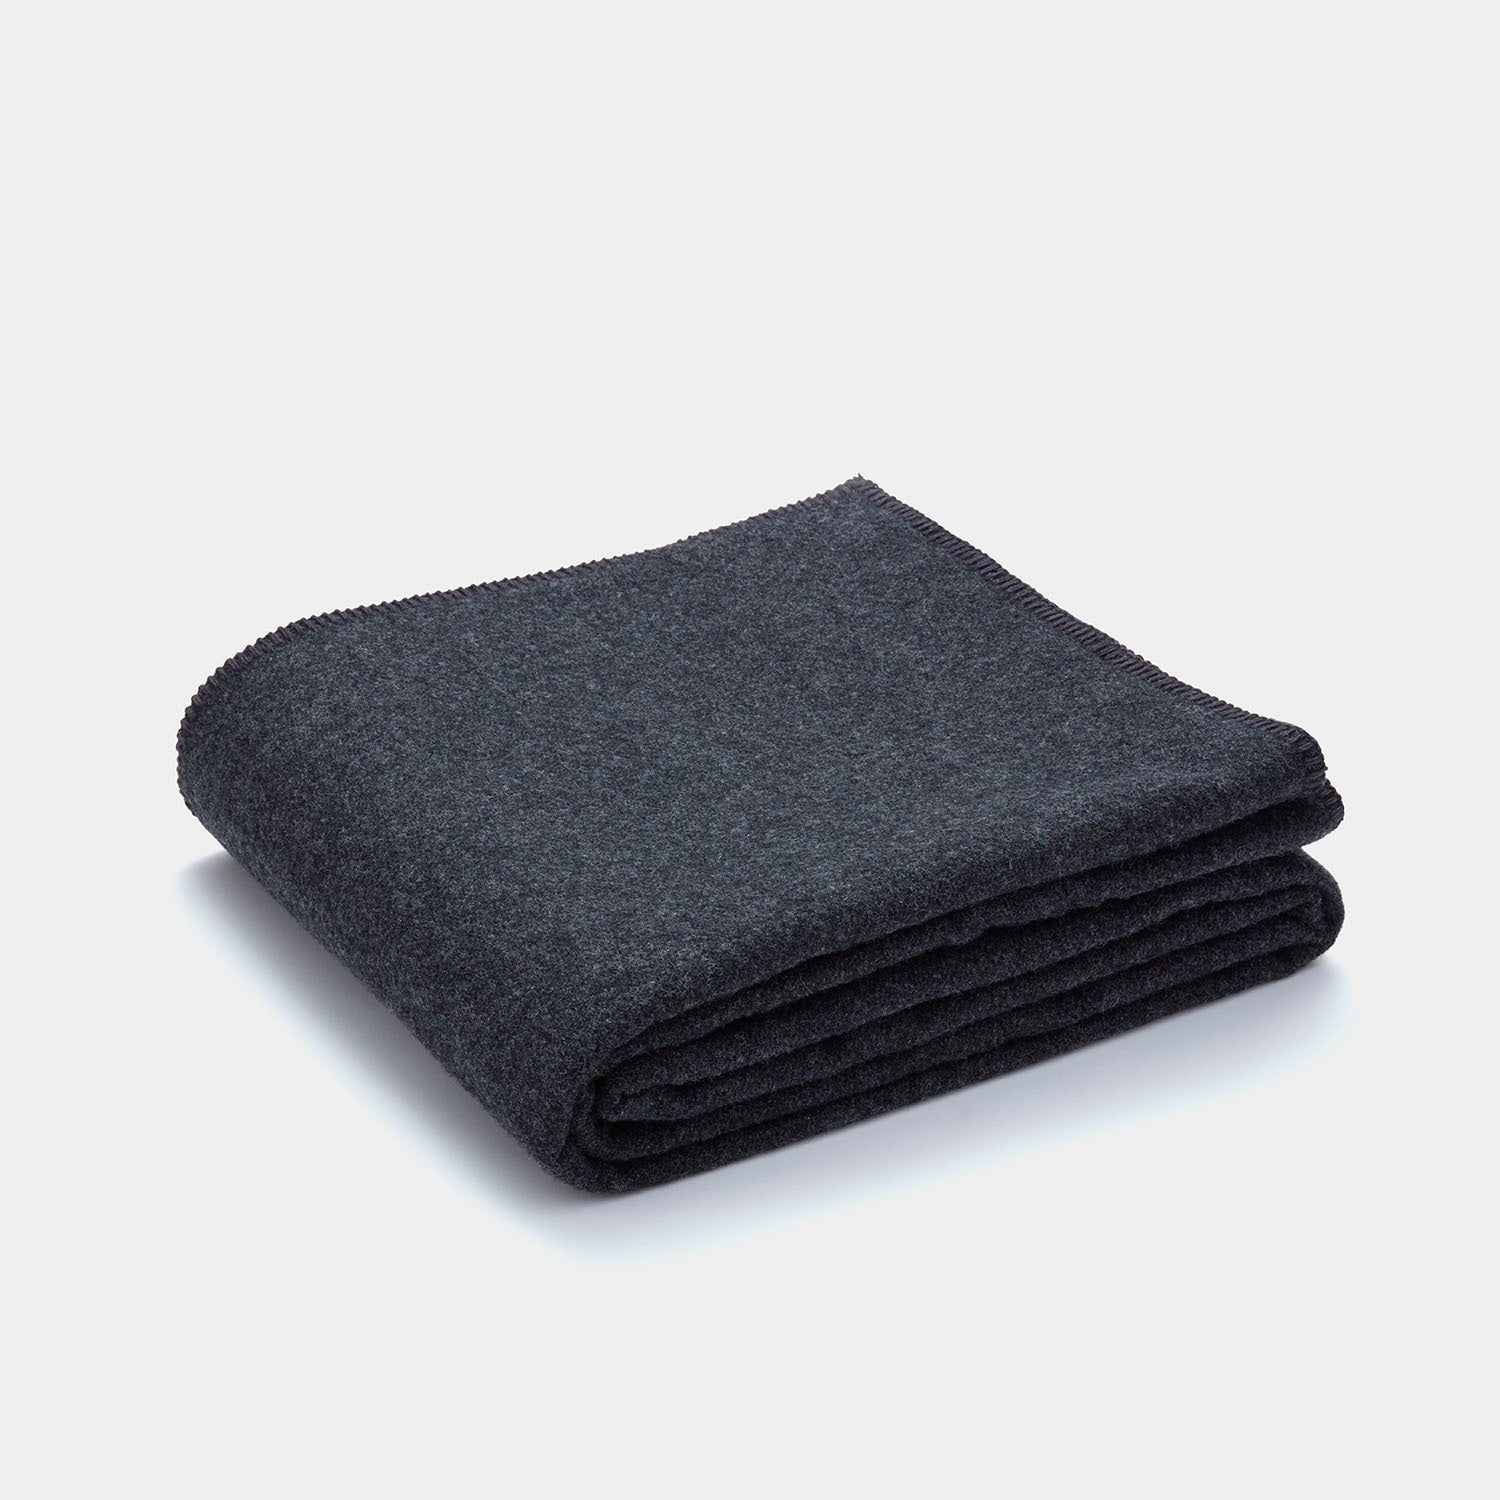 Pendleton Eco-Wise Wool Solid Blanket - Charcoal